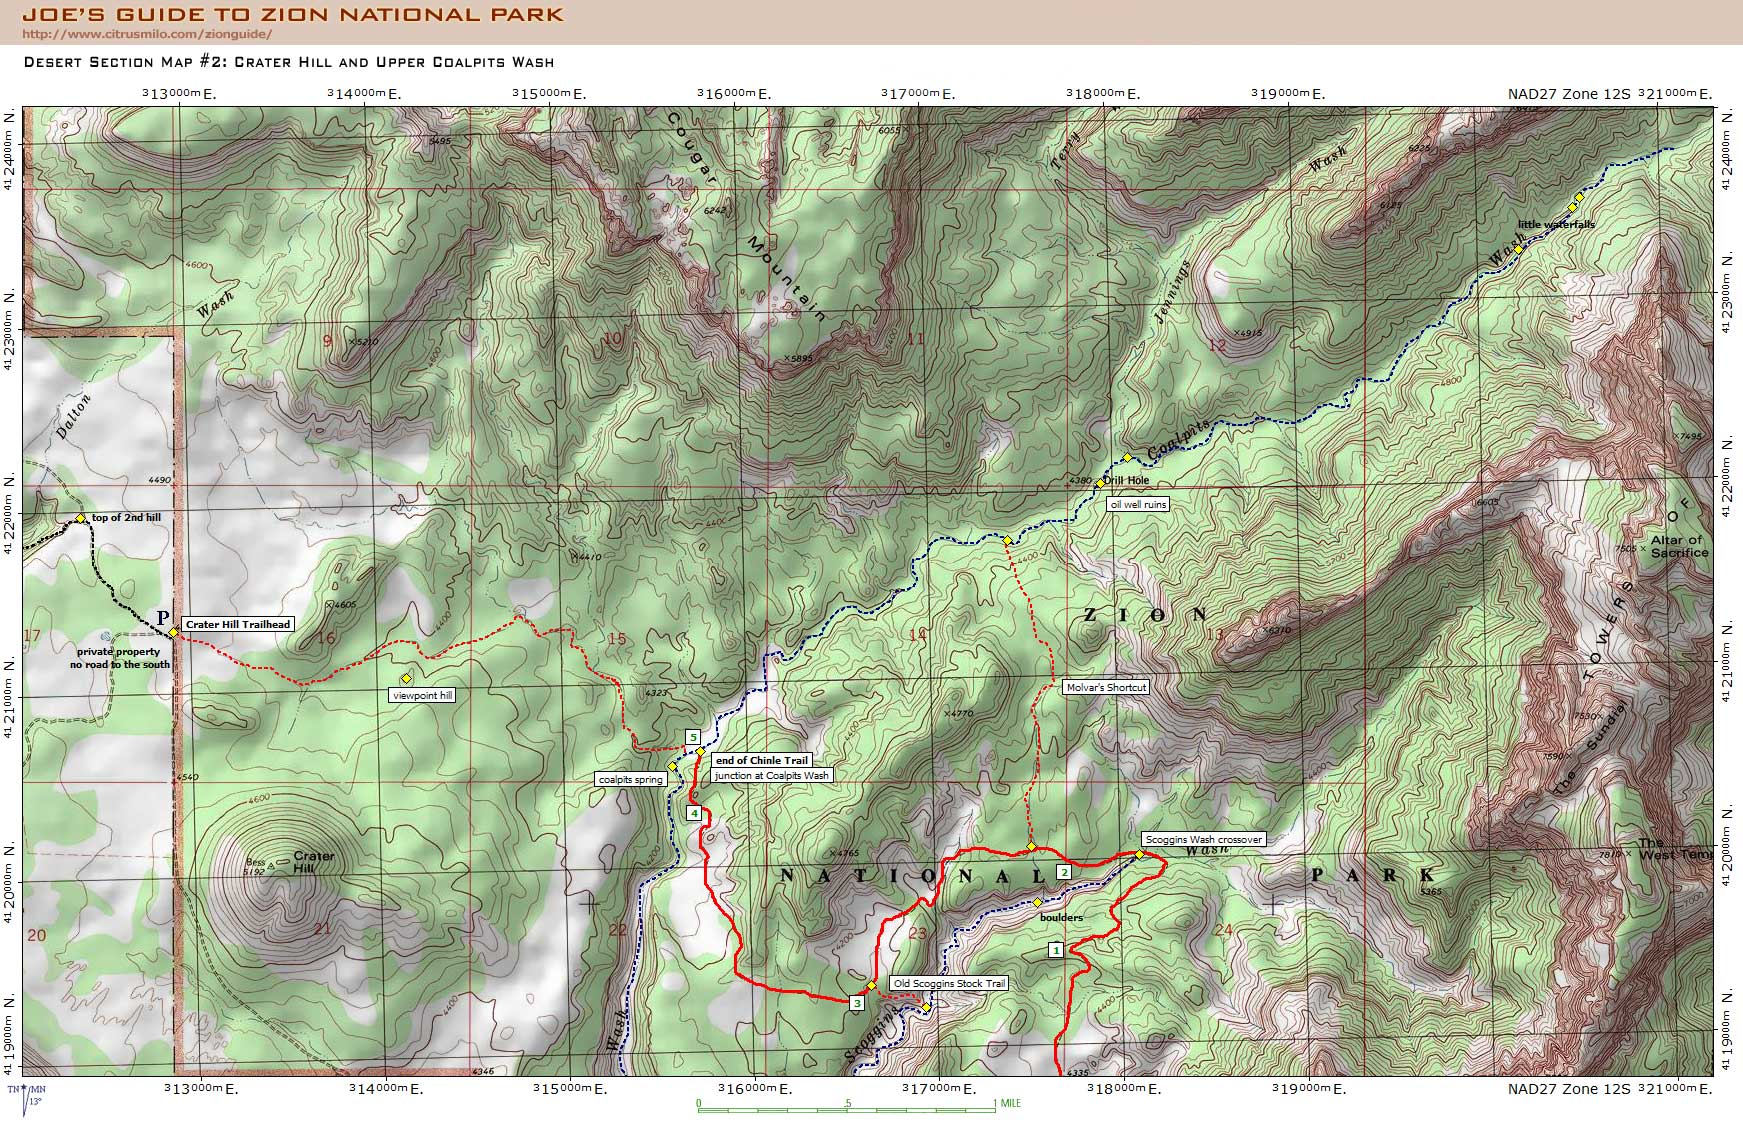 Joe's Guide to Zion National Park   Coalpits Wash Topo Map